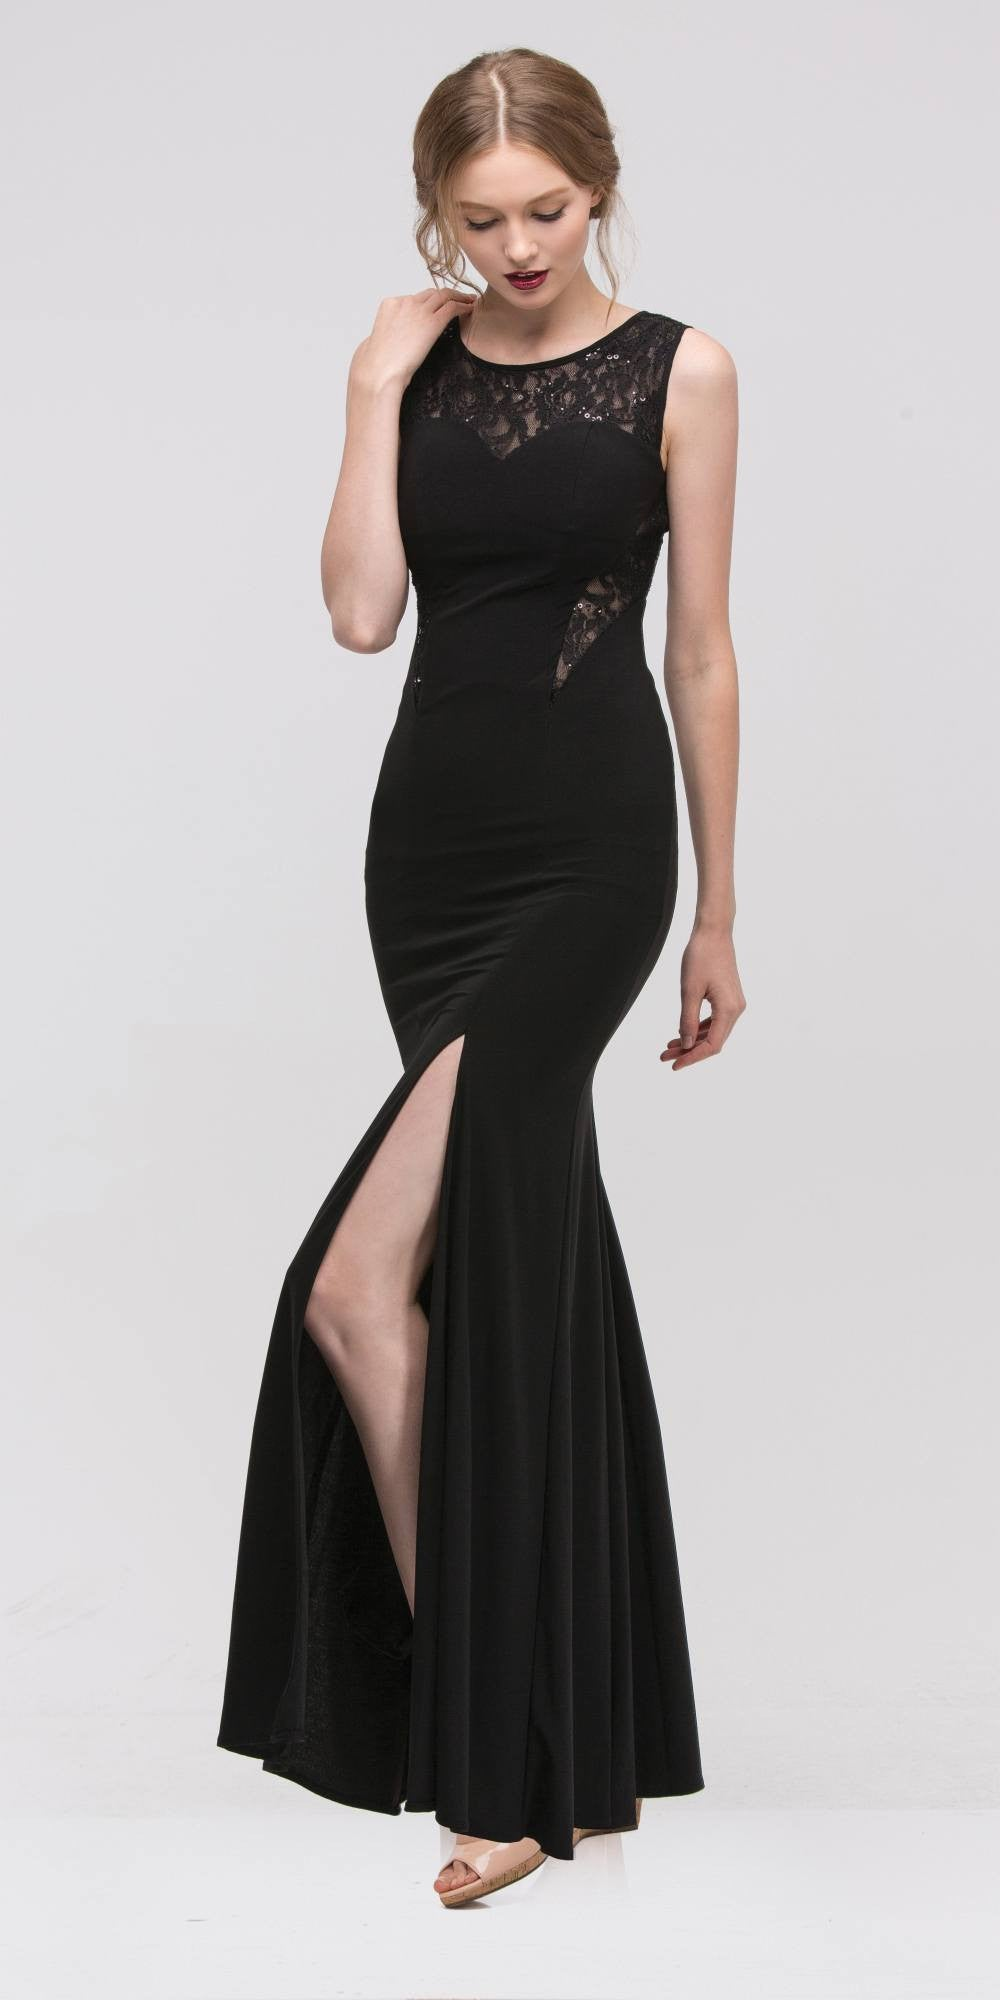 Round Neckline Black Evening Gown with Lace Accent and Slit